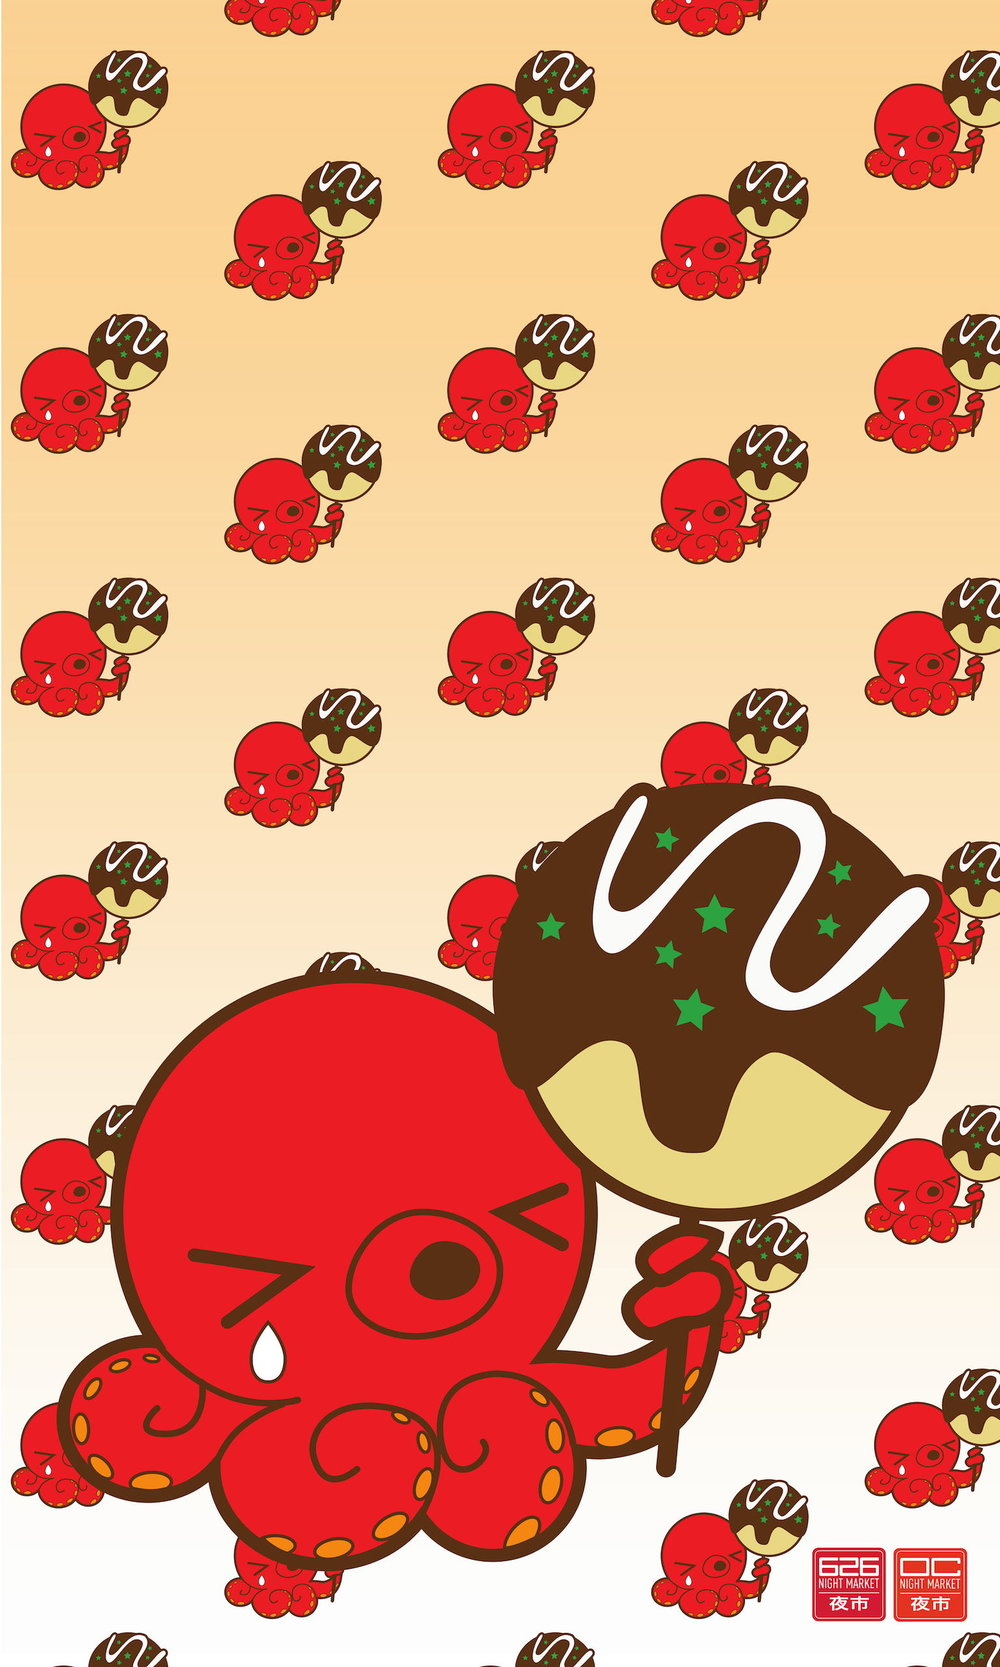 oc-night-market-takoyaki-phone-wallpaper.jpg